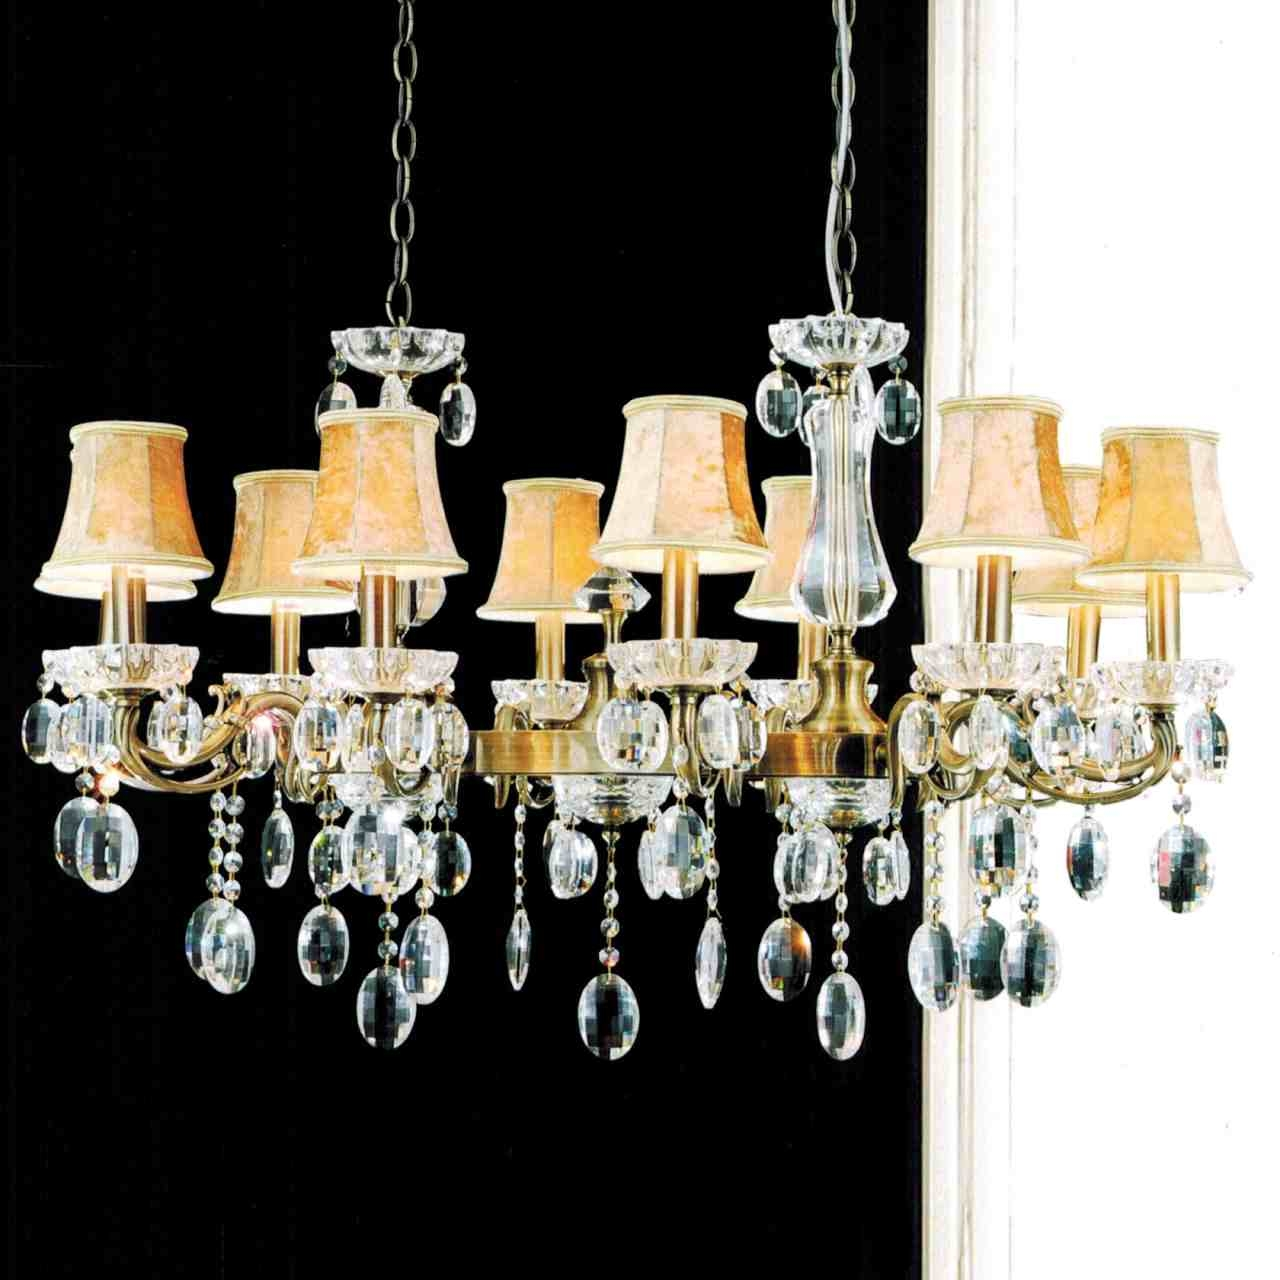 25 Best Collection of Chandelier Lampshades | Chandelier Ideas